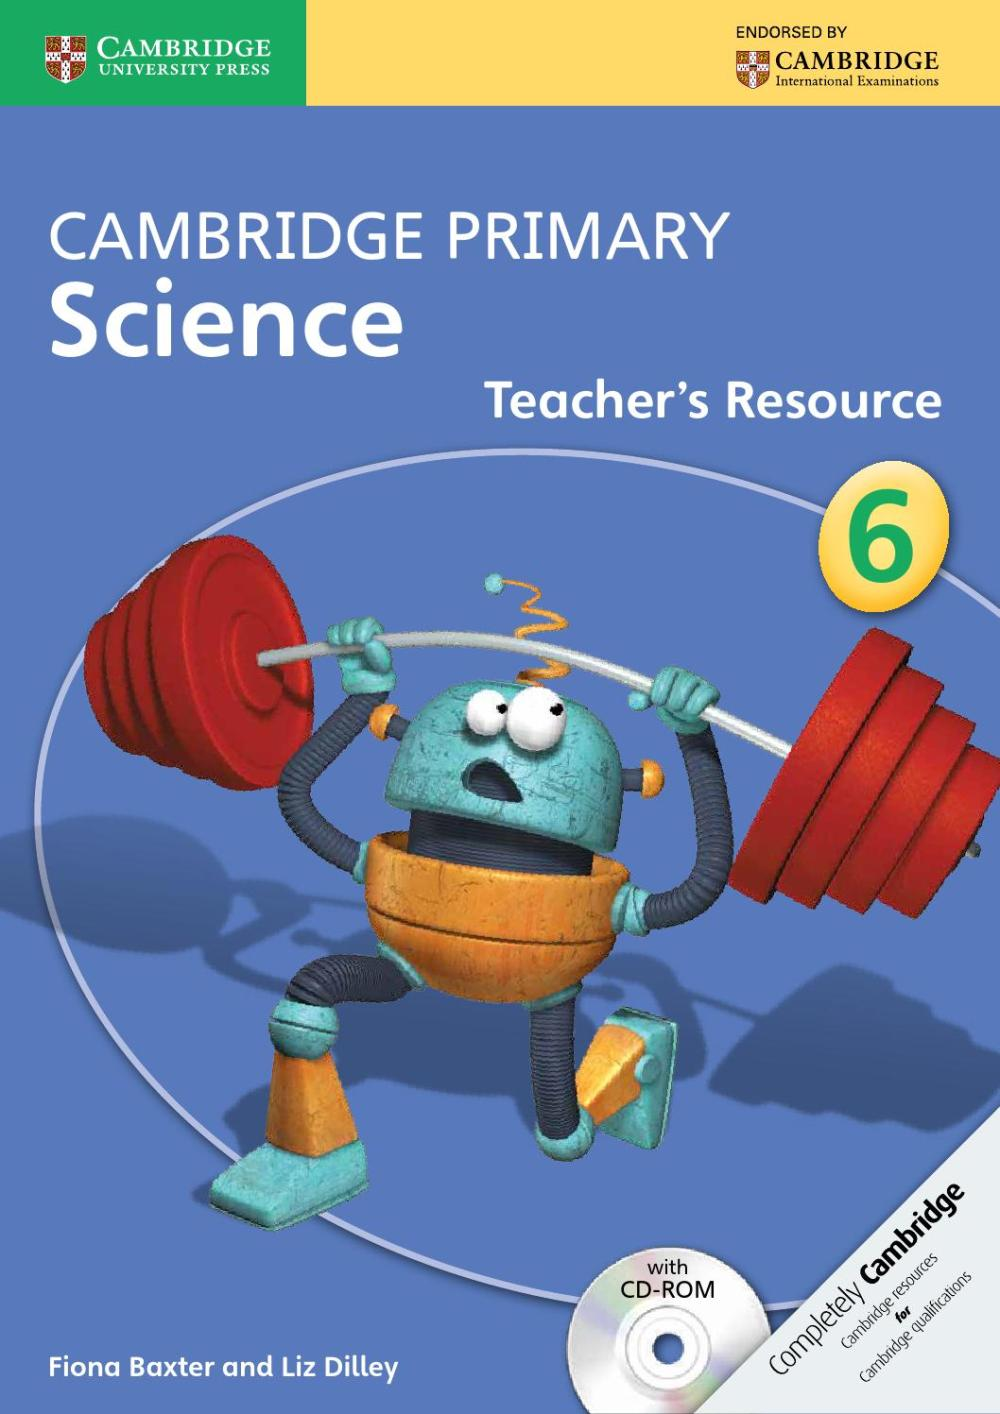 medium resolution of Cambridge Primary Science Teacher's Resource Book 6 with CD-ROM by Cambridge  University Press Education - issuu